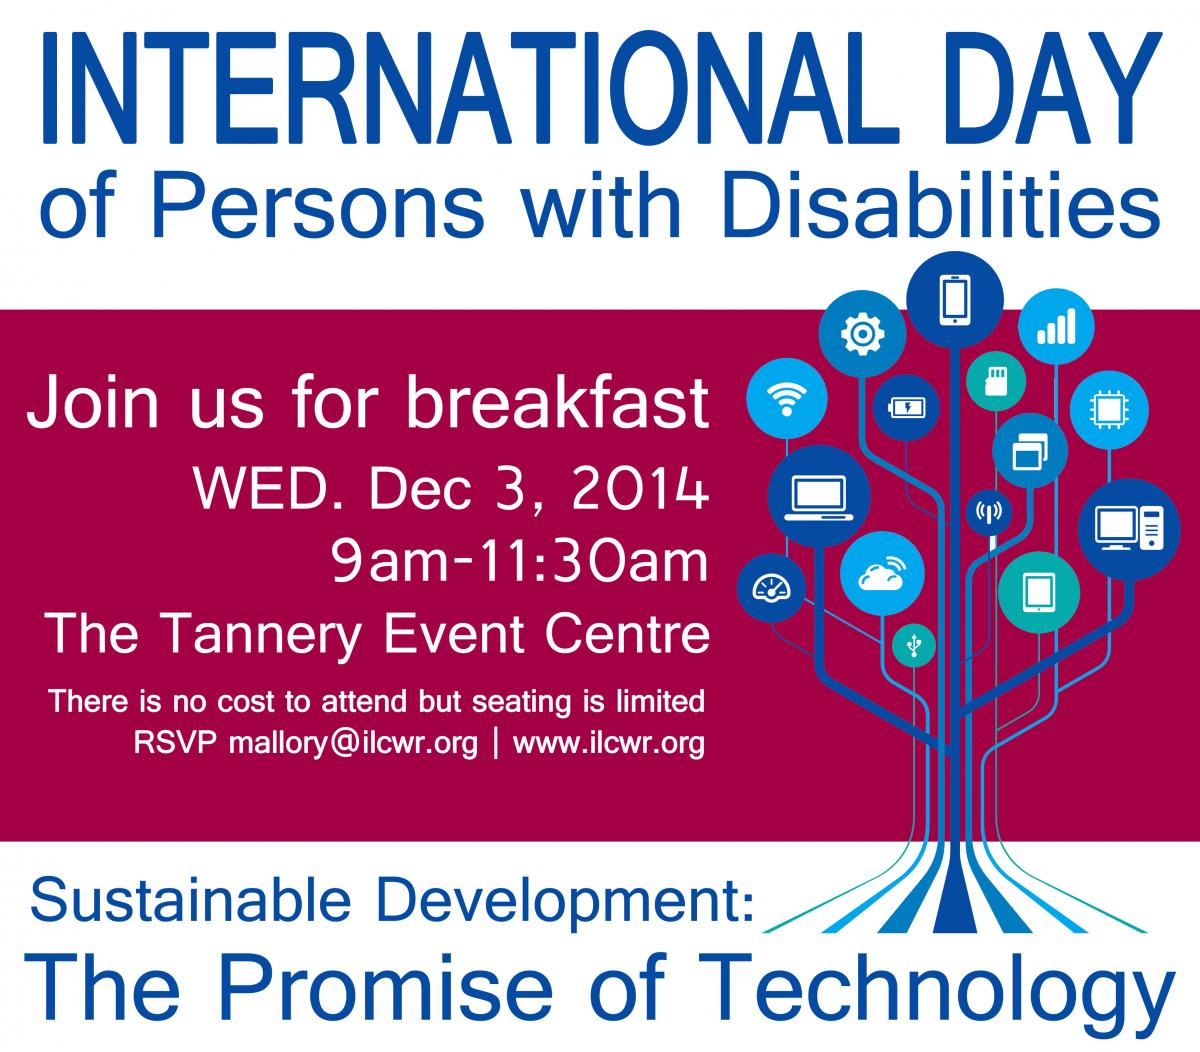 United Nations International Day For Persons With Disabilities December 3 2014 Social